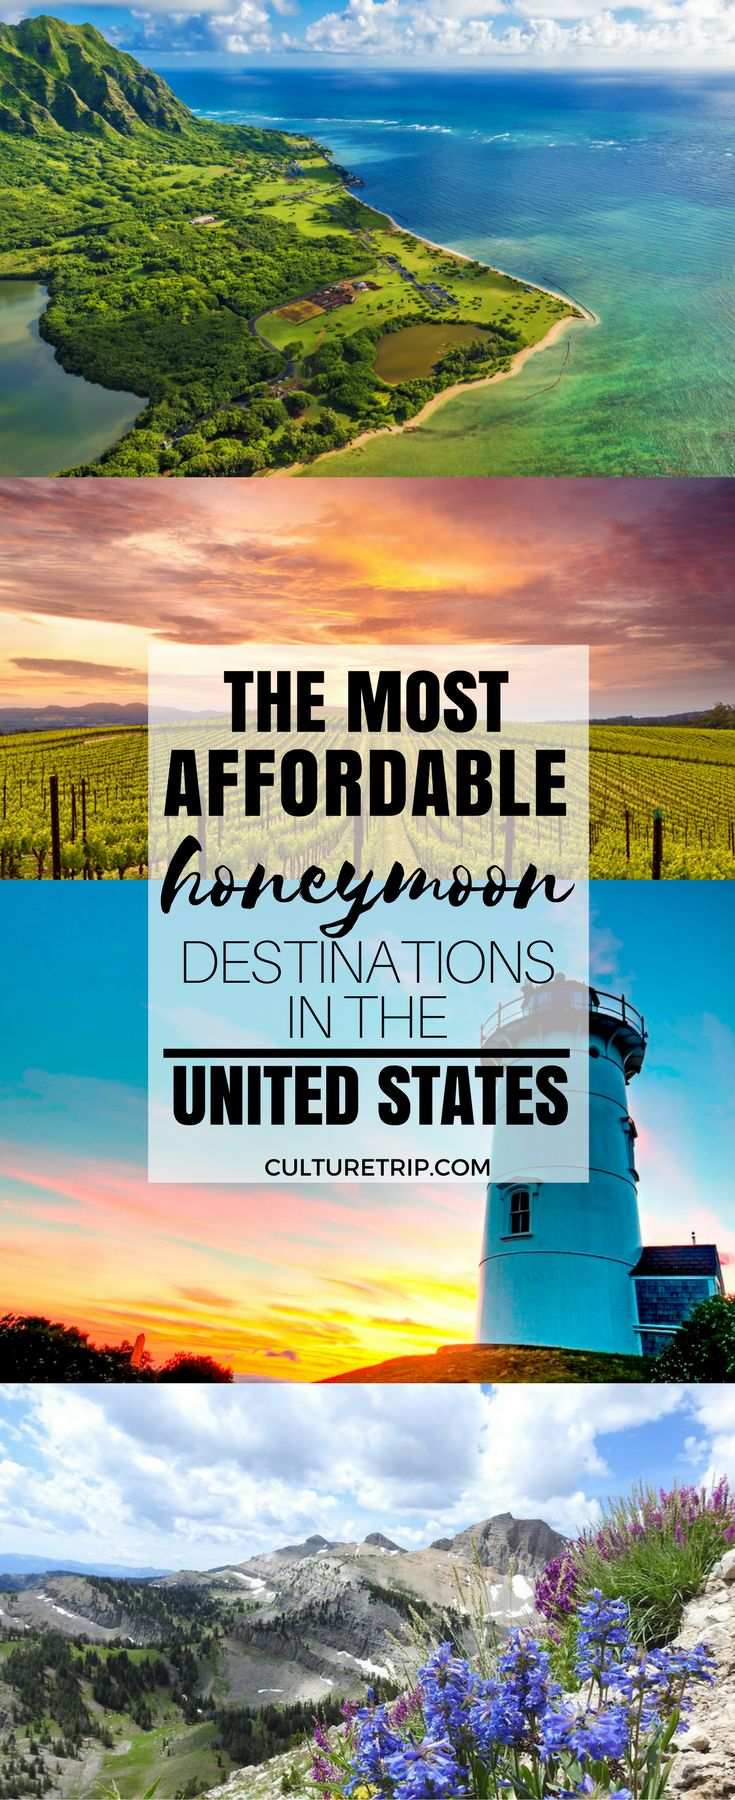 The Most Affordable Honeymoon Destinations in the United States|Pinterest: @theculturetrip